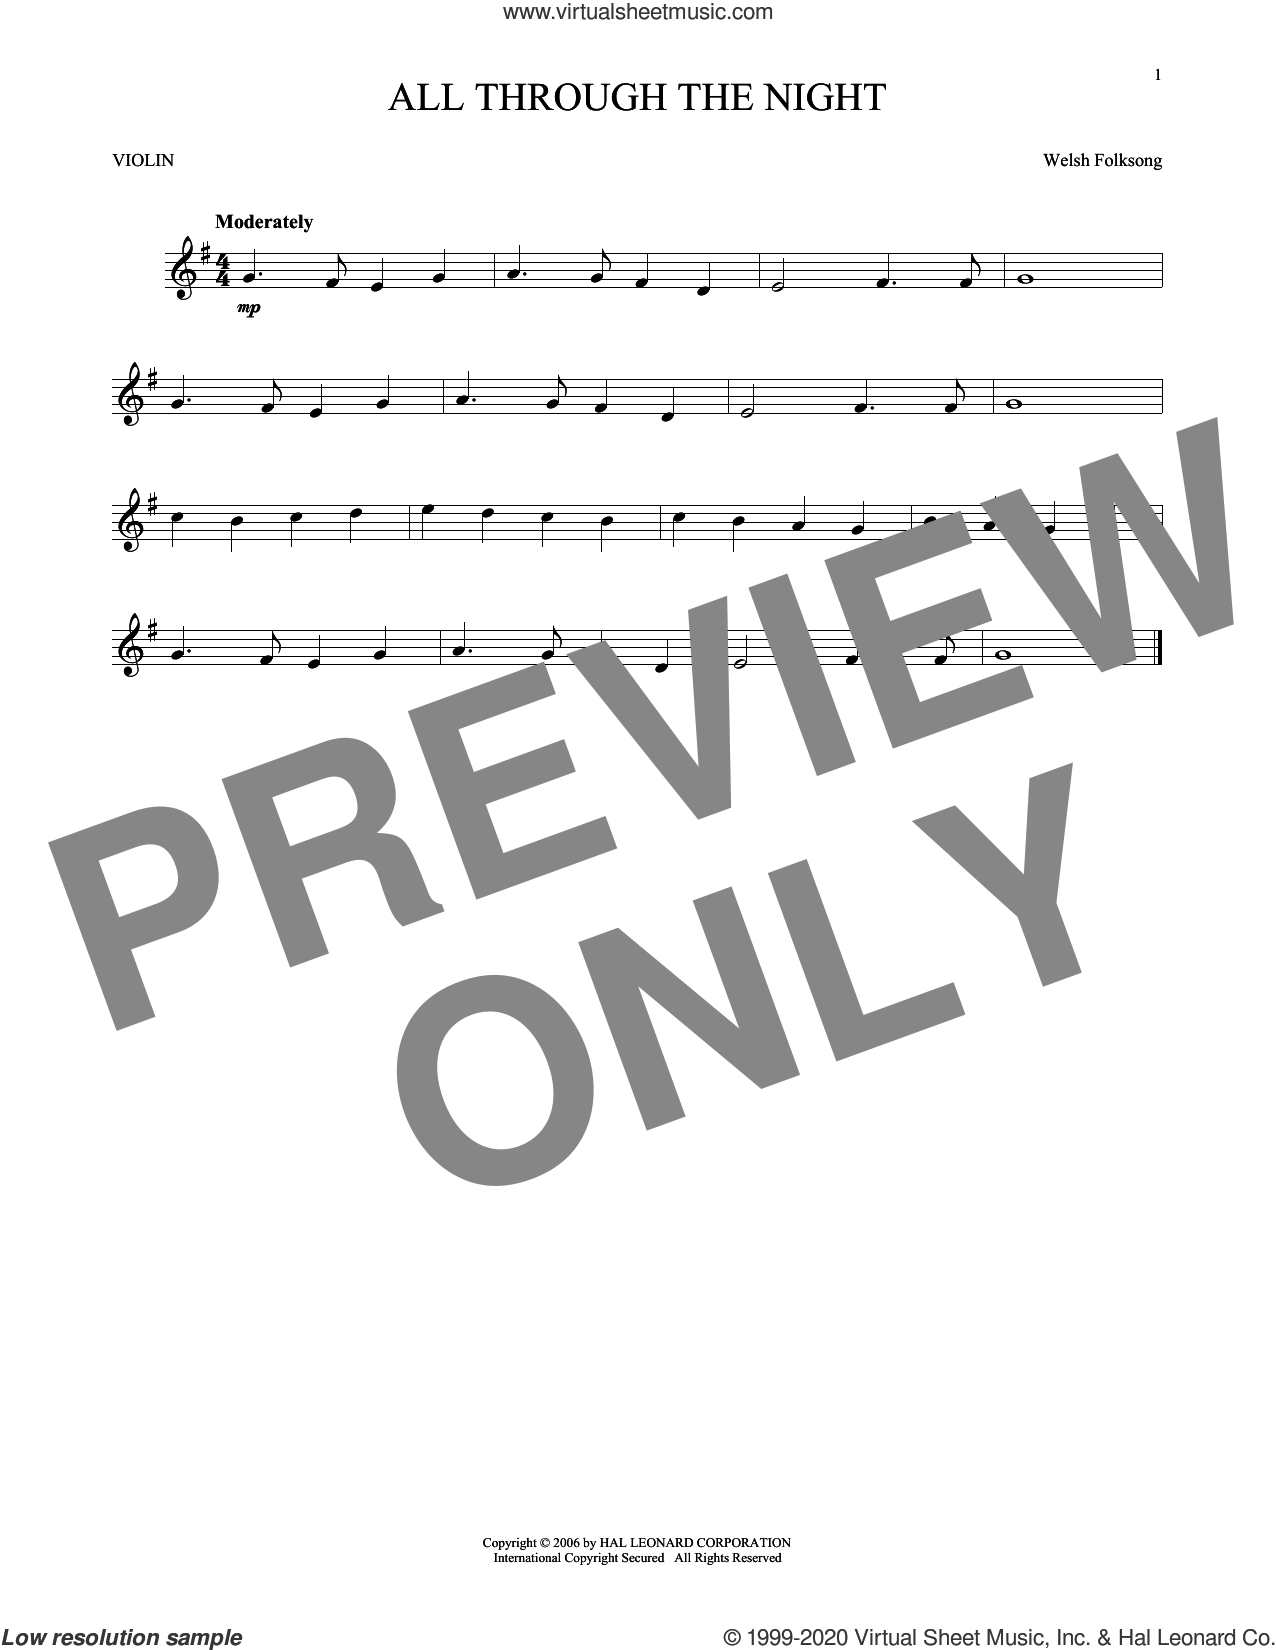 All Through The Night sheet music for violin solo, intermediate skill level